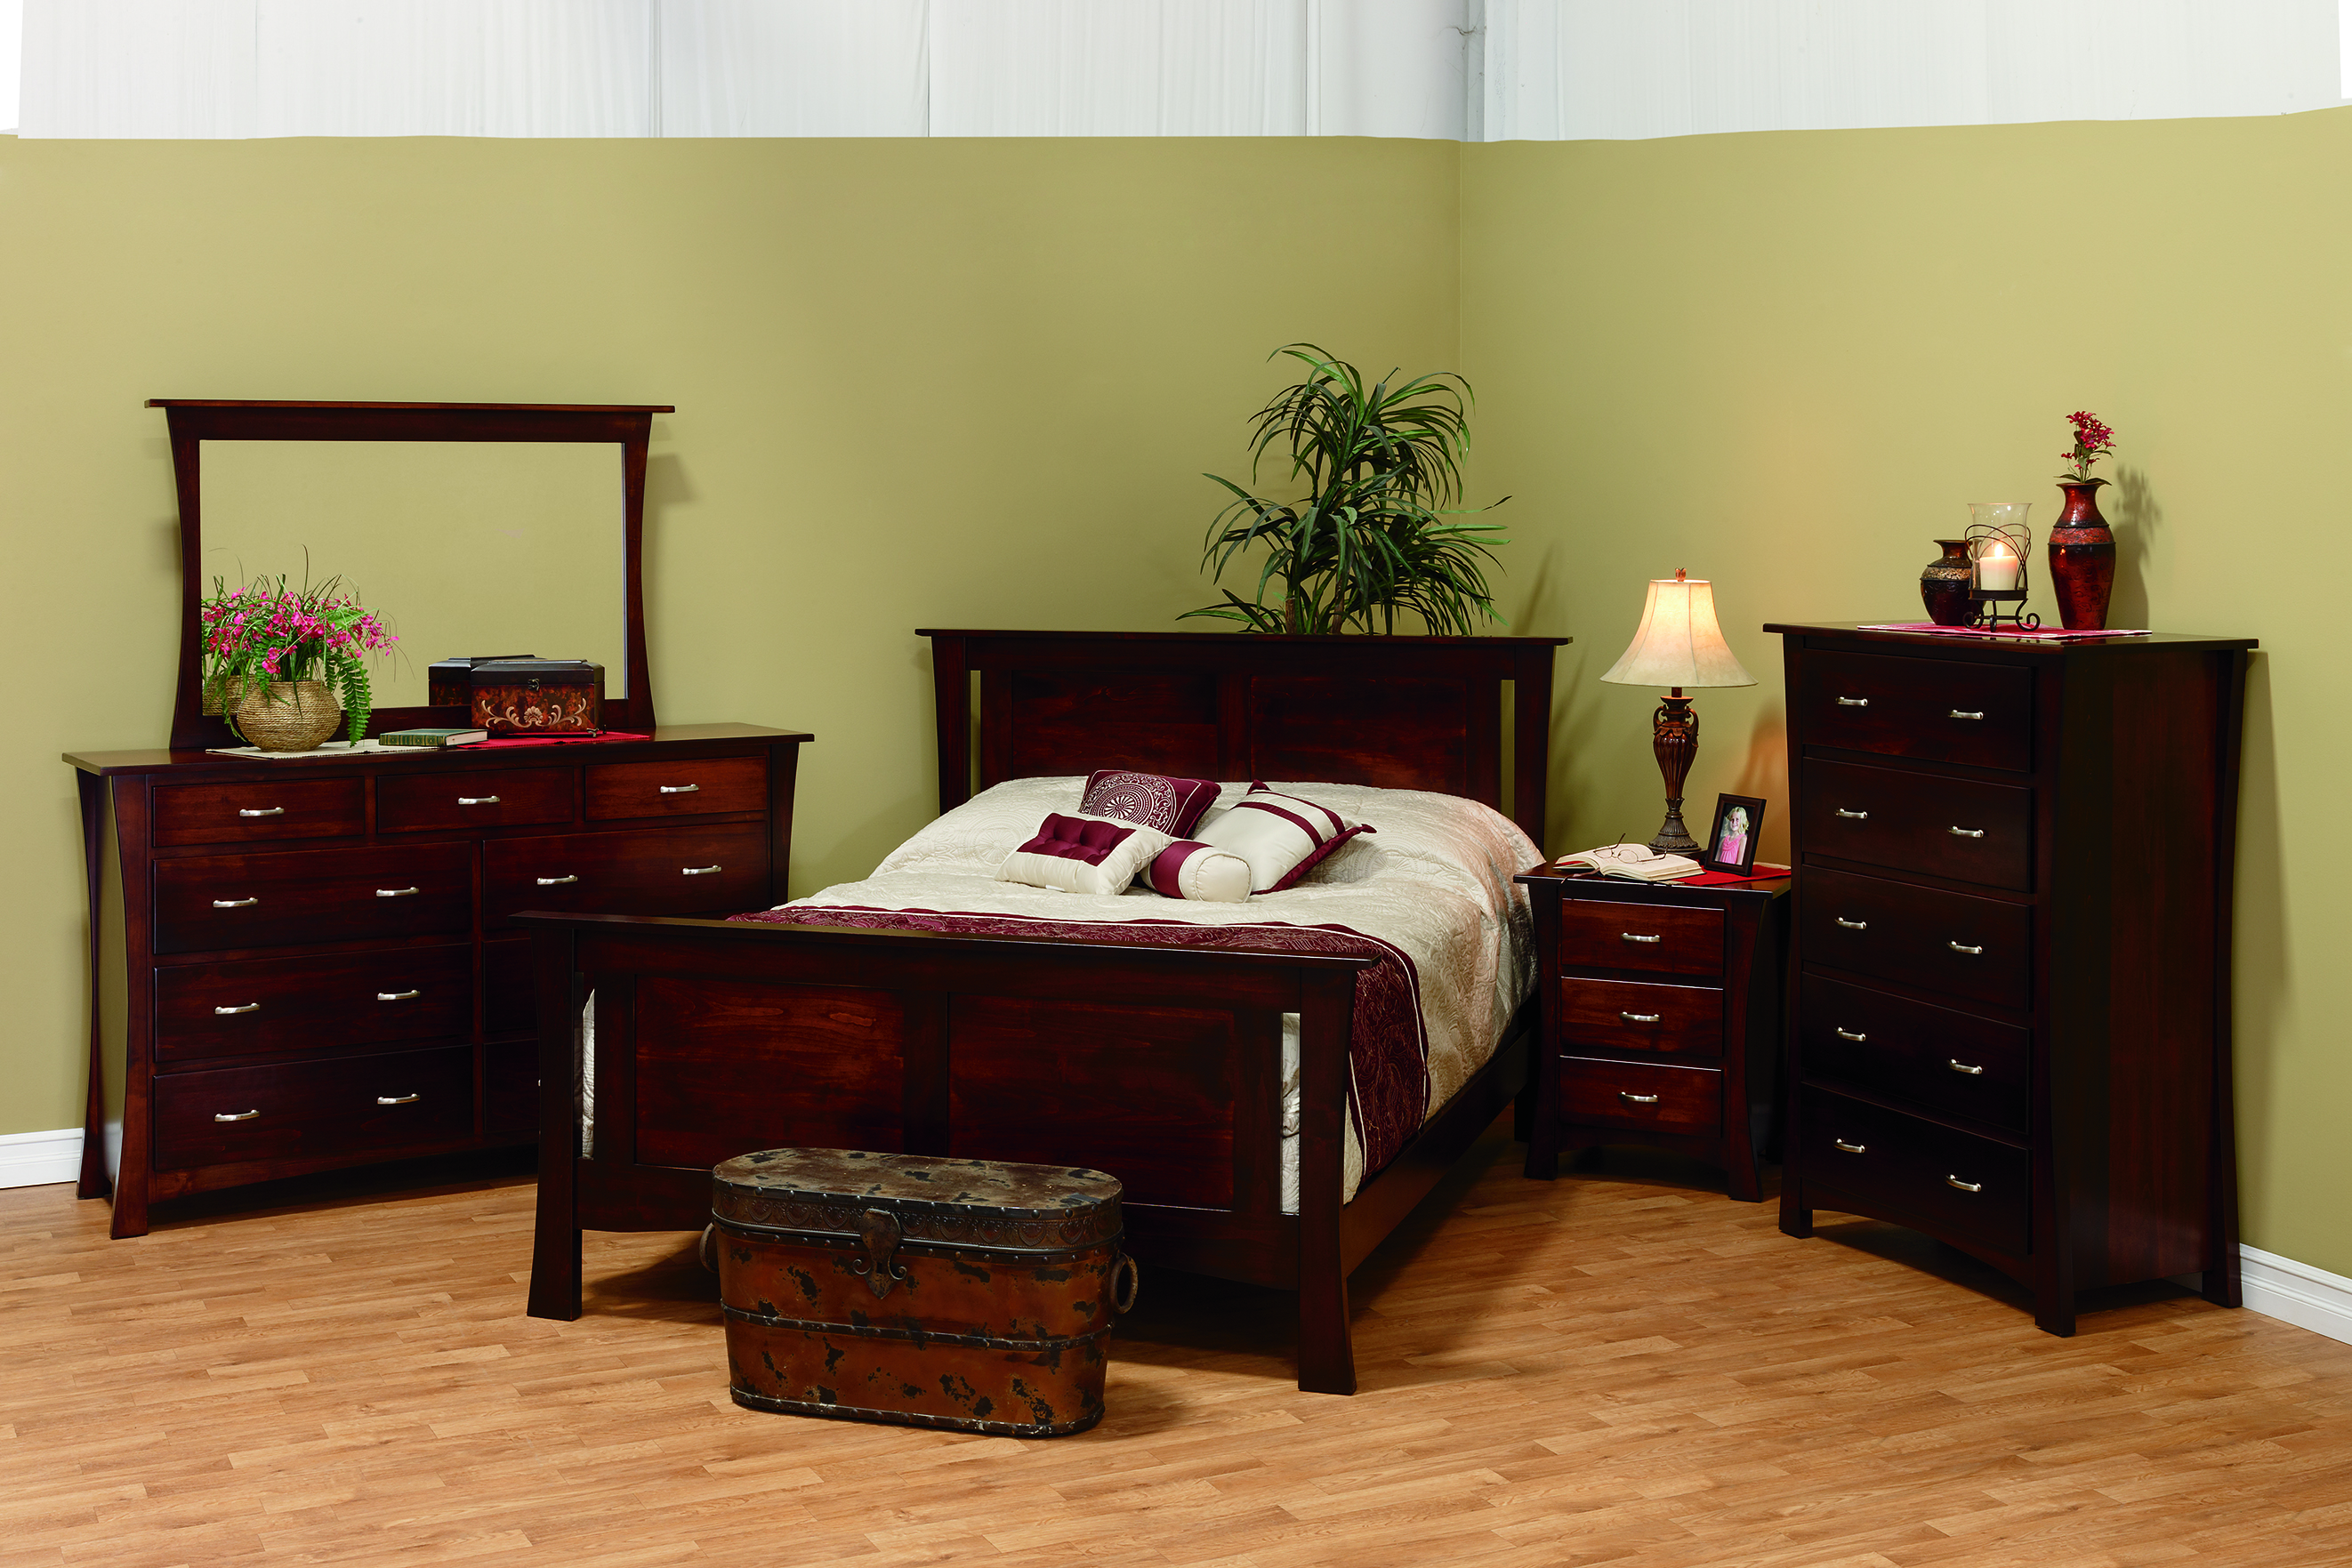 Oxford Bed - Amish Furniture Connections - Amish Furniture Connections